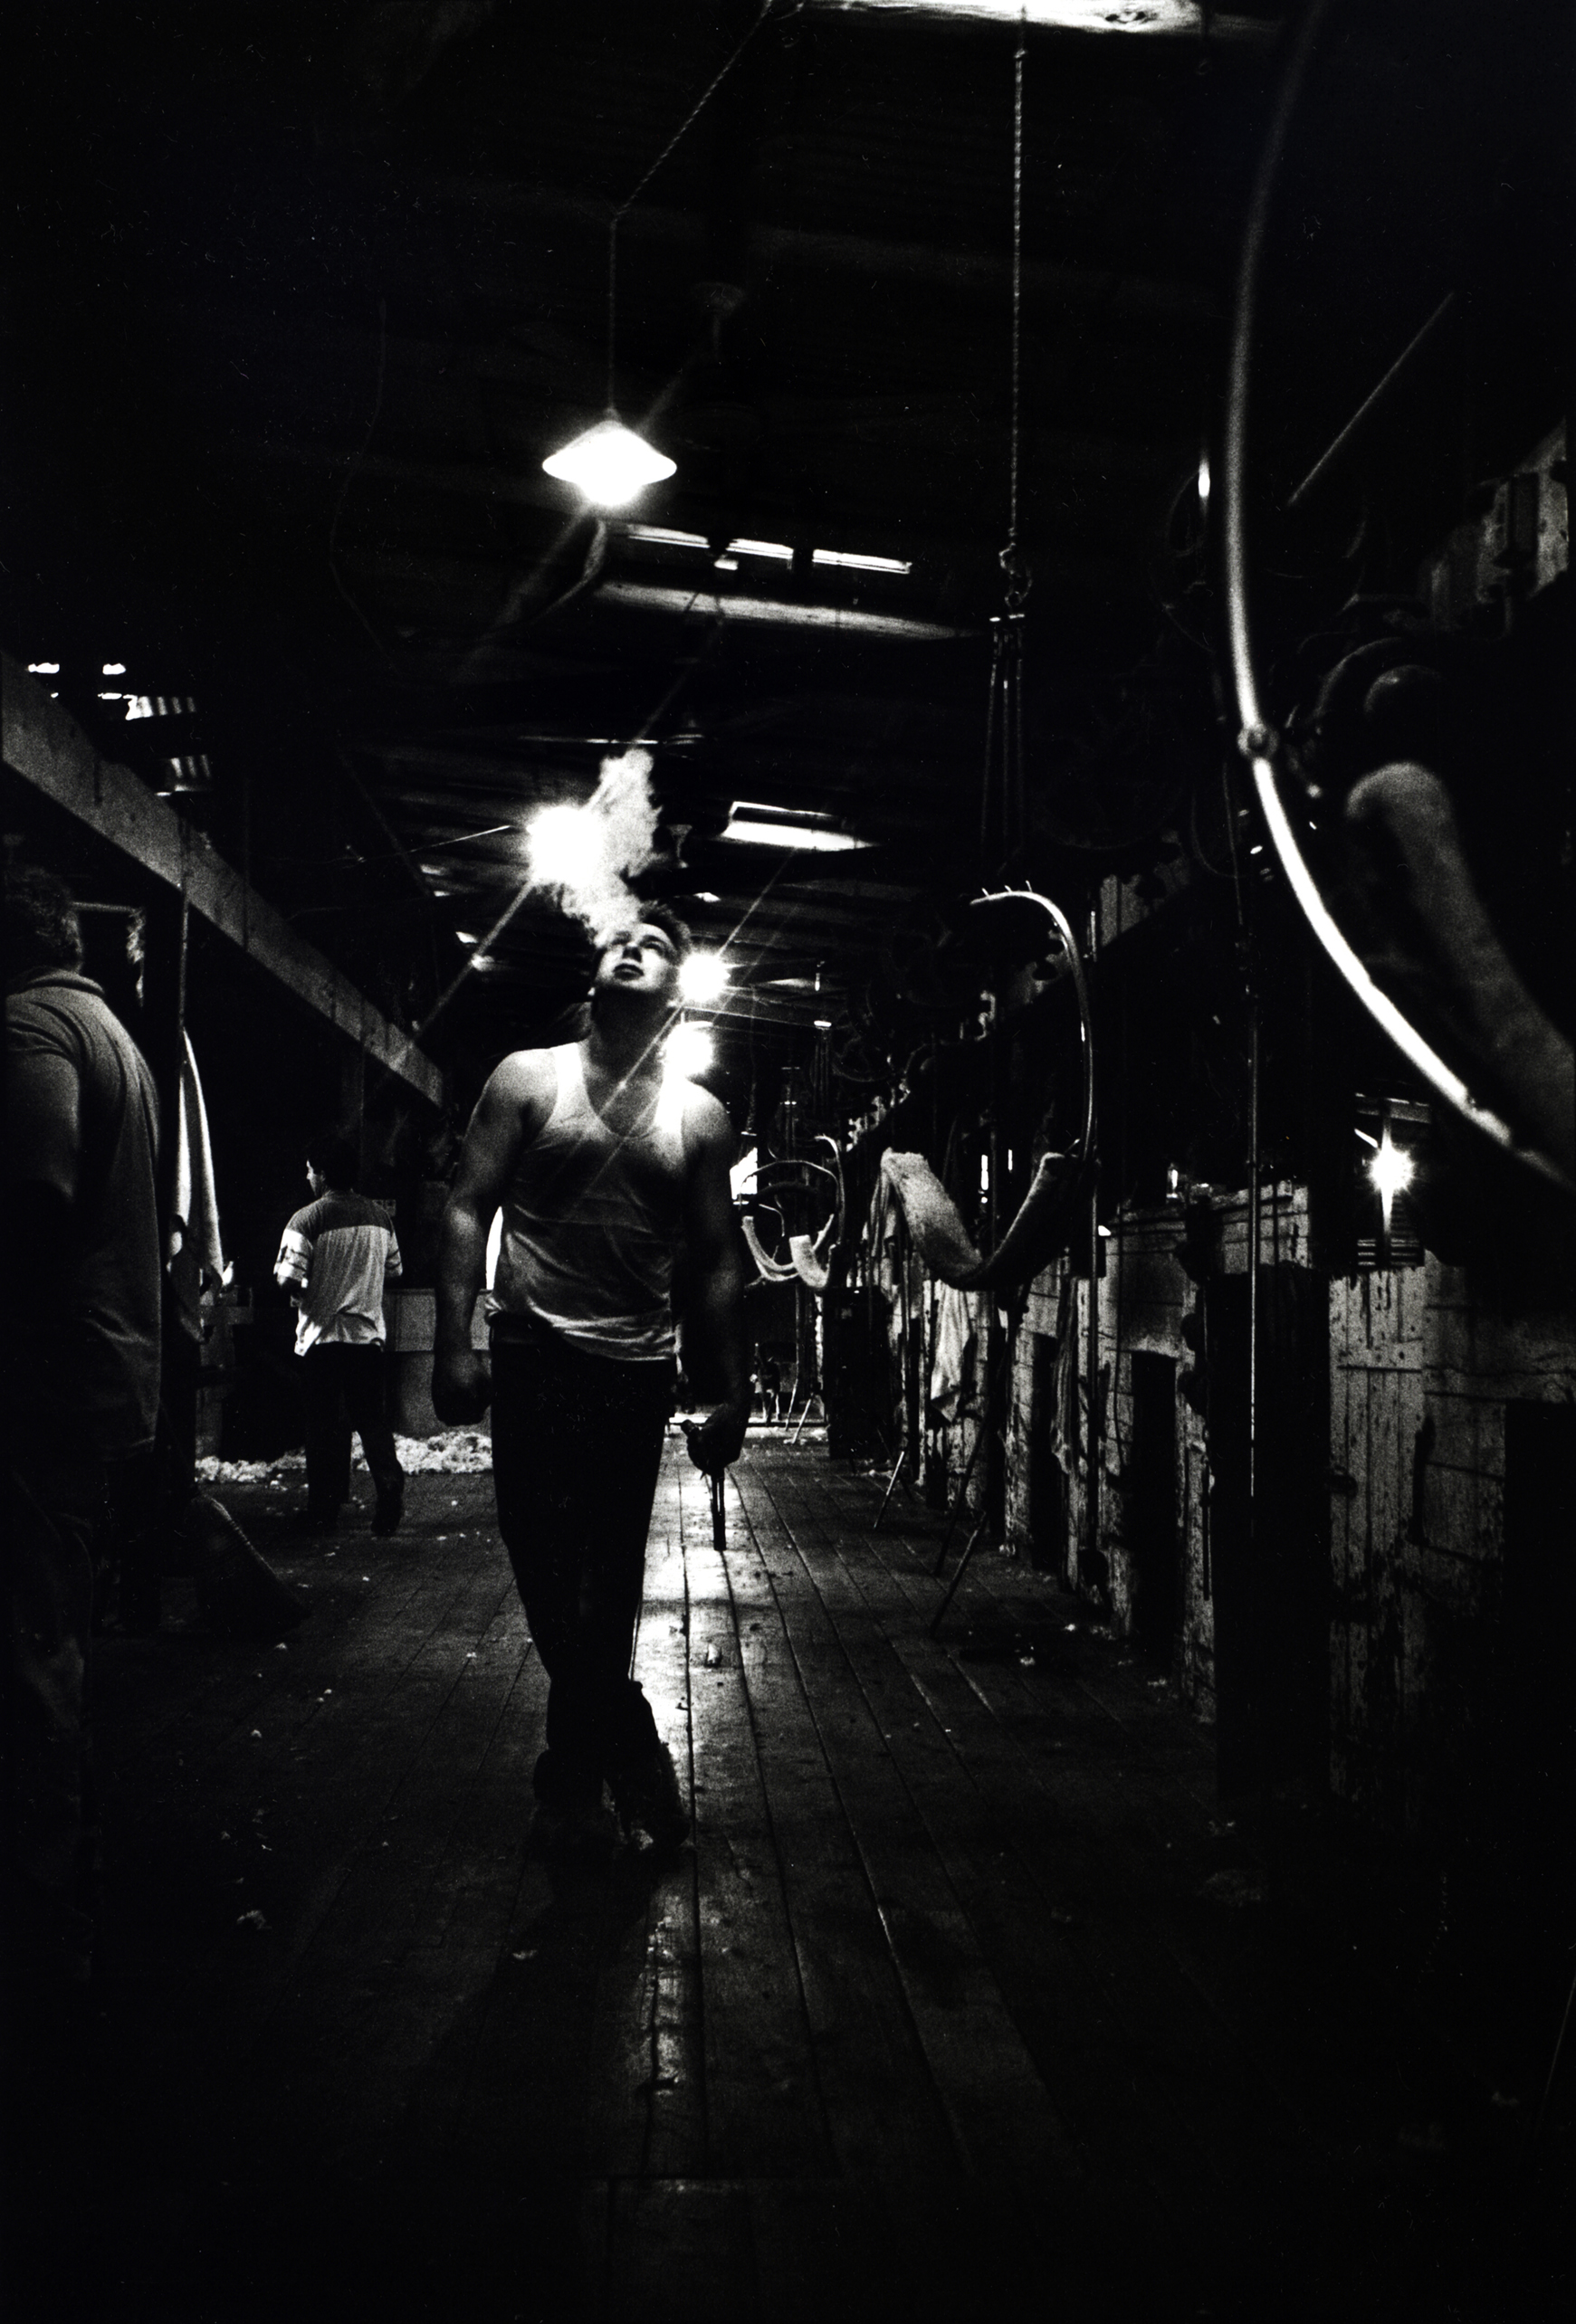 End of the working day. Sheep station, outback NSW, Australia. 1996